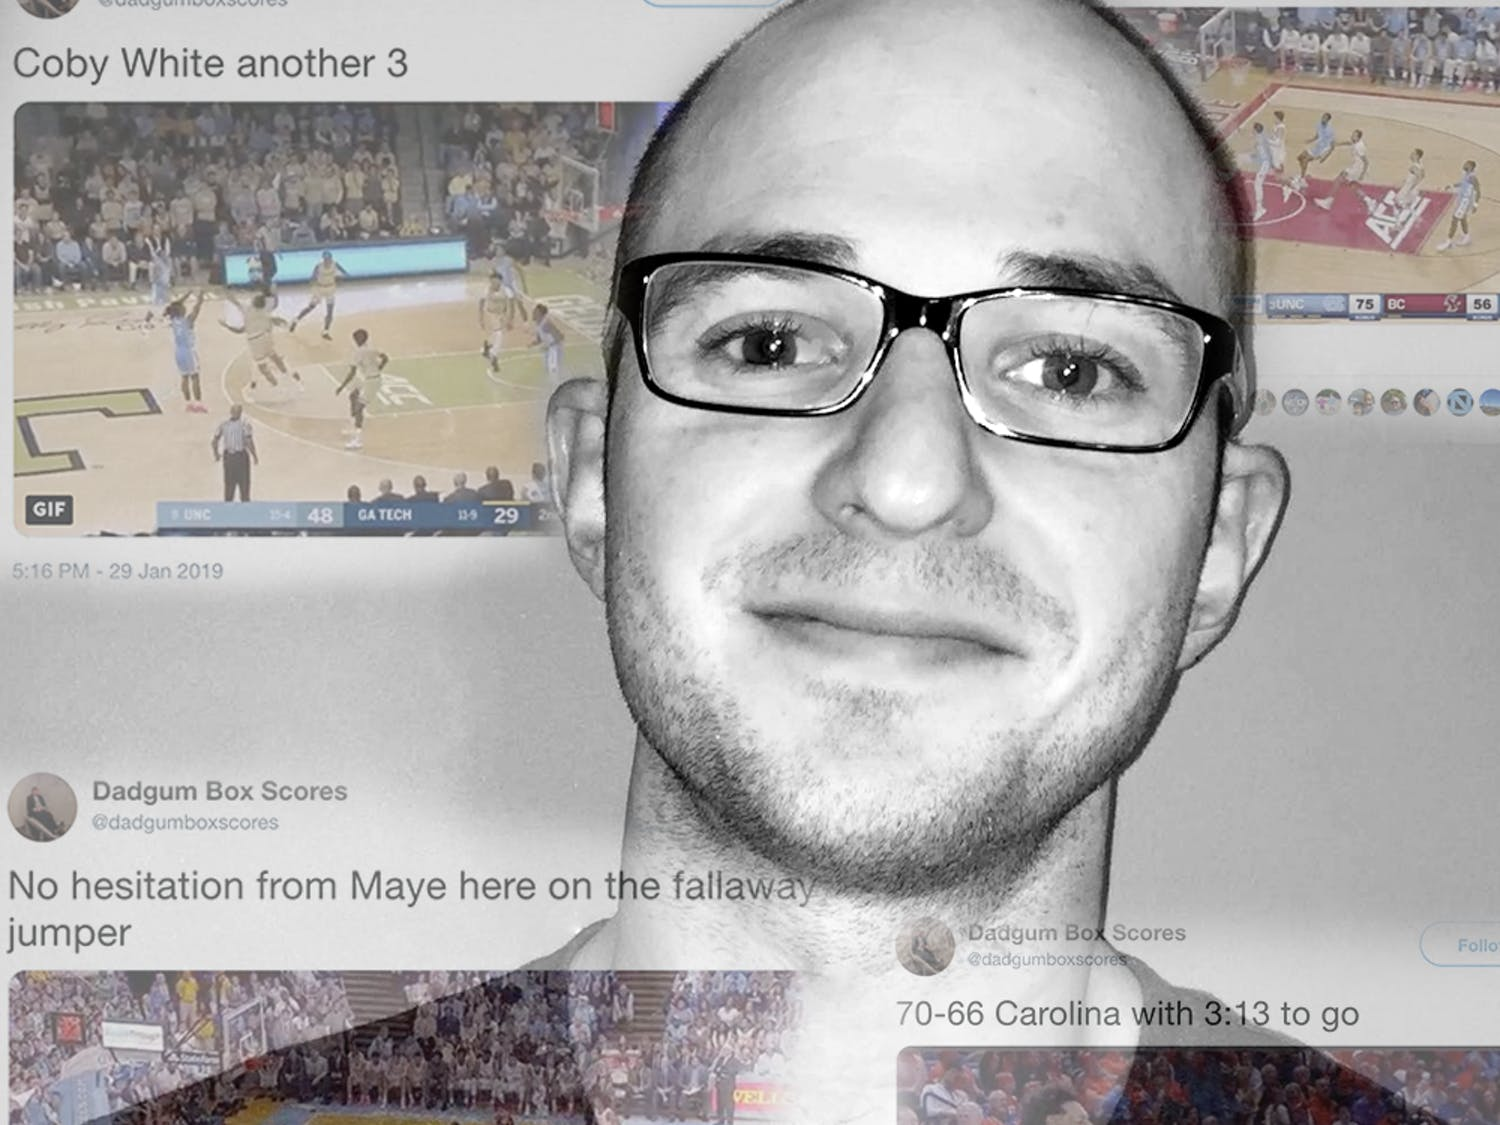 DTH Graphic/Haley Hodges; headshot courtesy of Chris Gallo; screenshots courtesy of @dadgumboxscores.